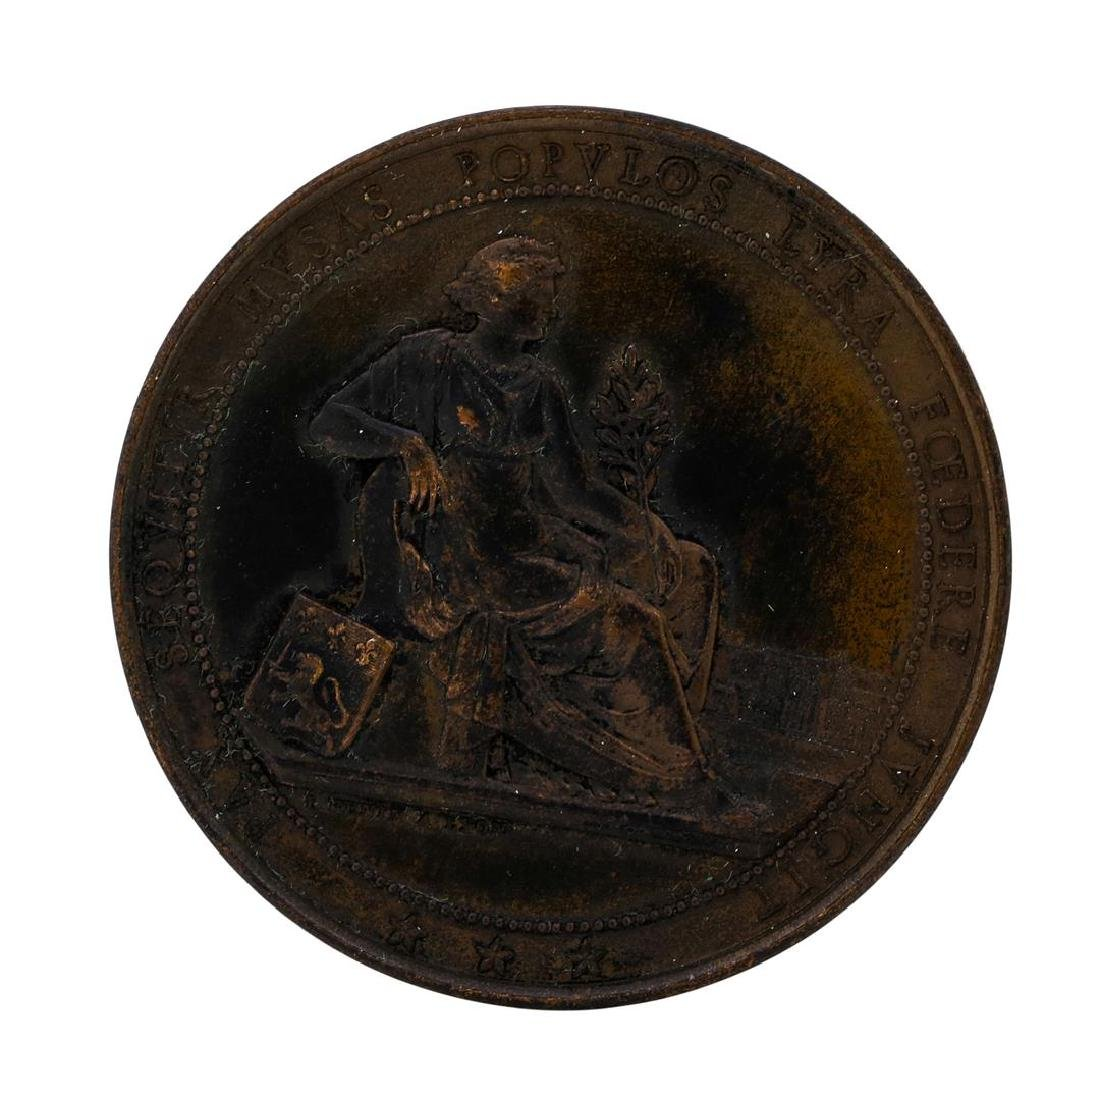 1864 France Lyon Music Competition 1864 Award Medal